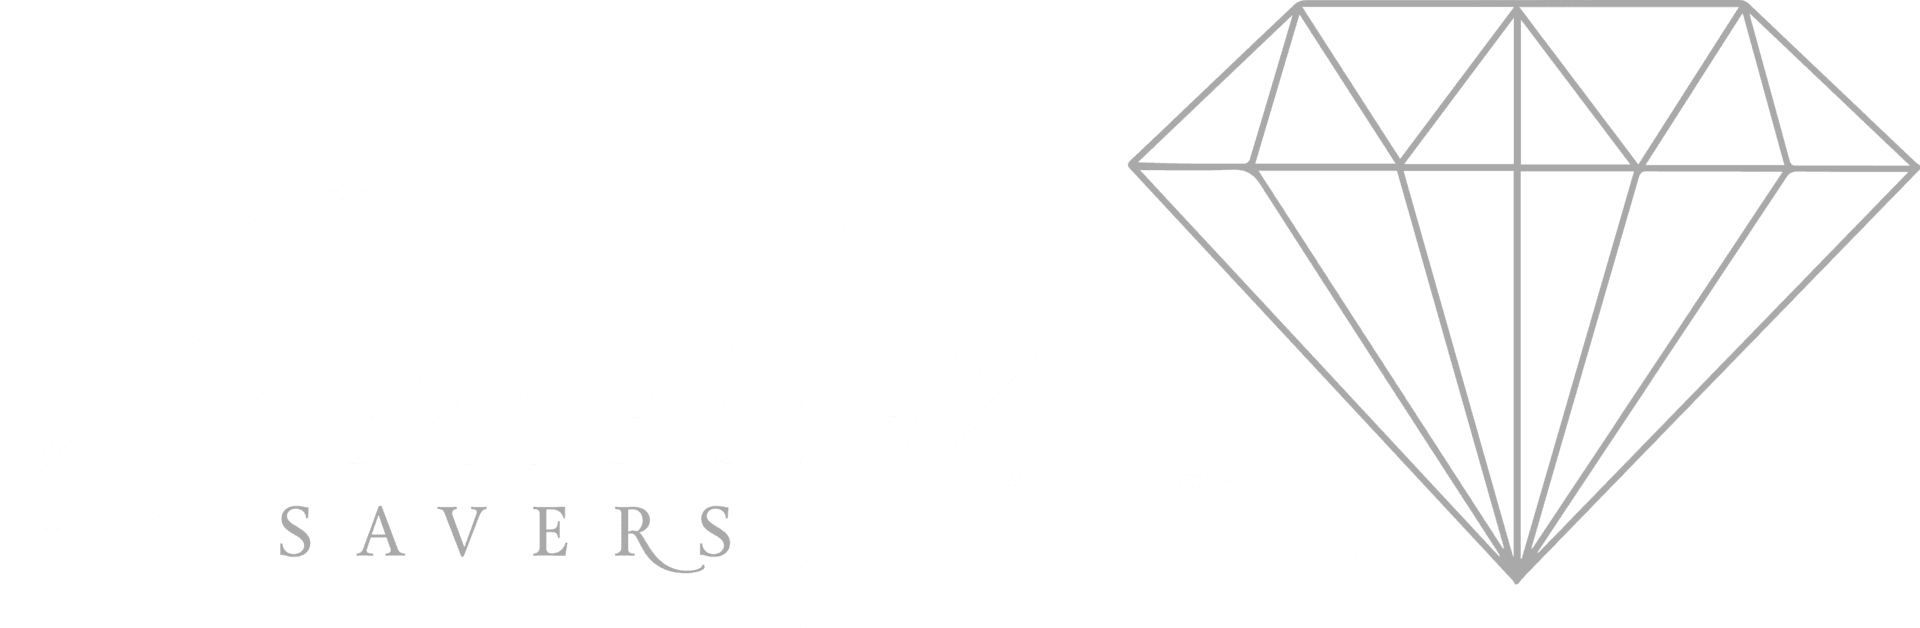 Jewelry Savers - Logo